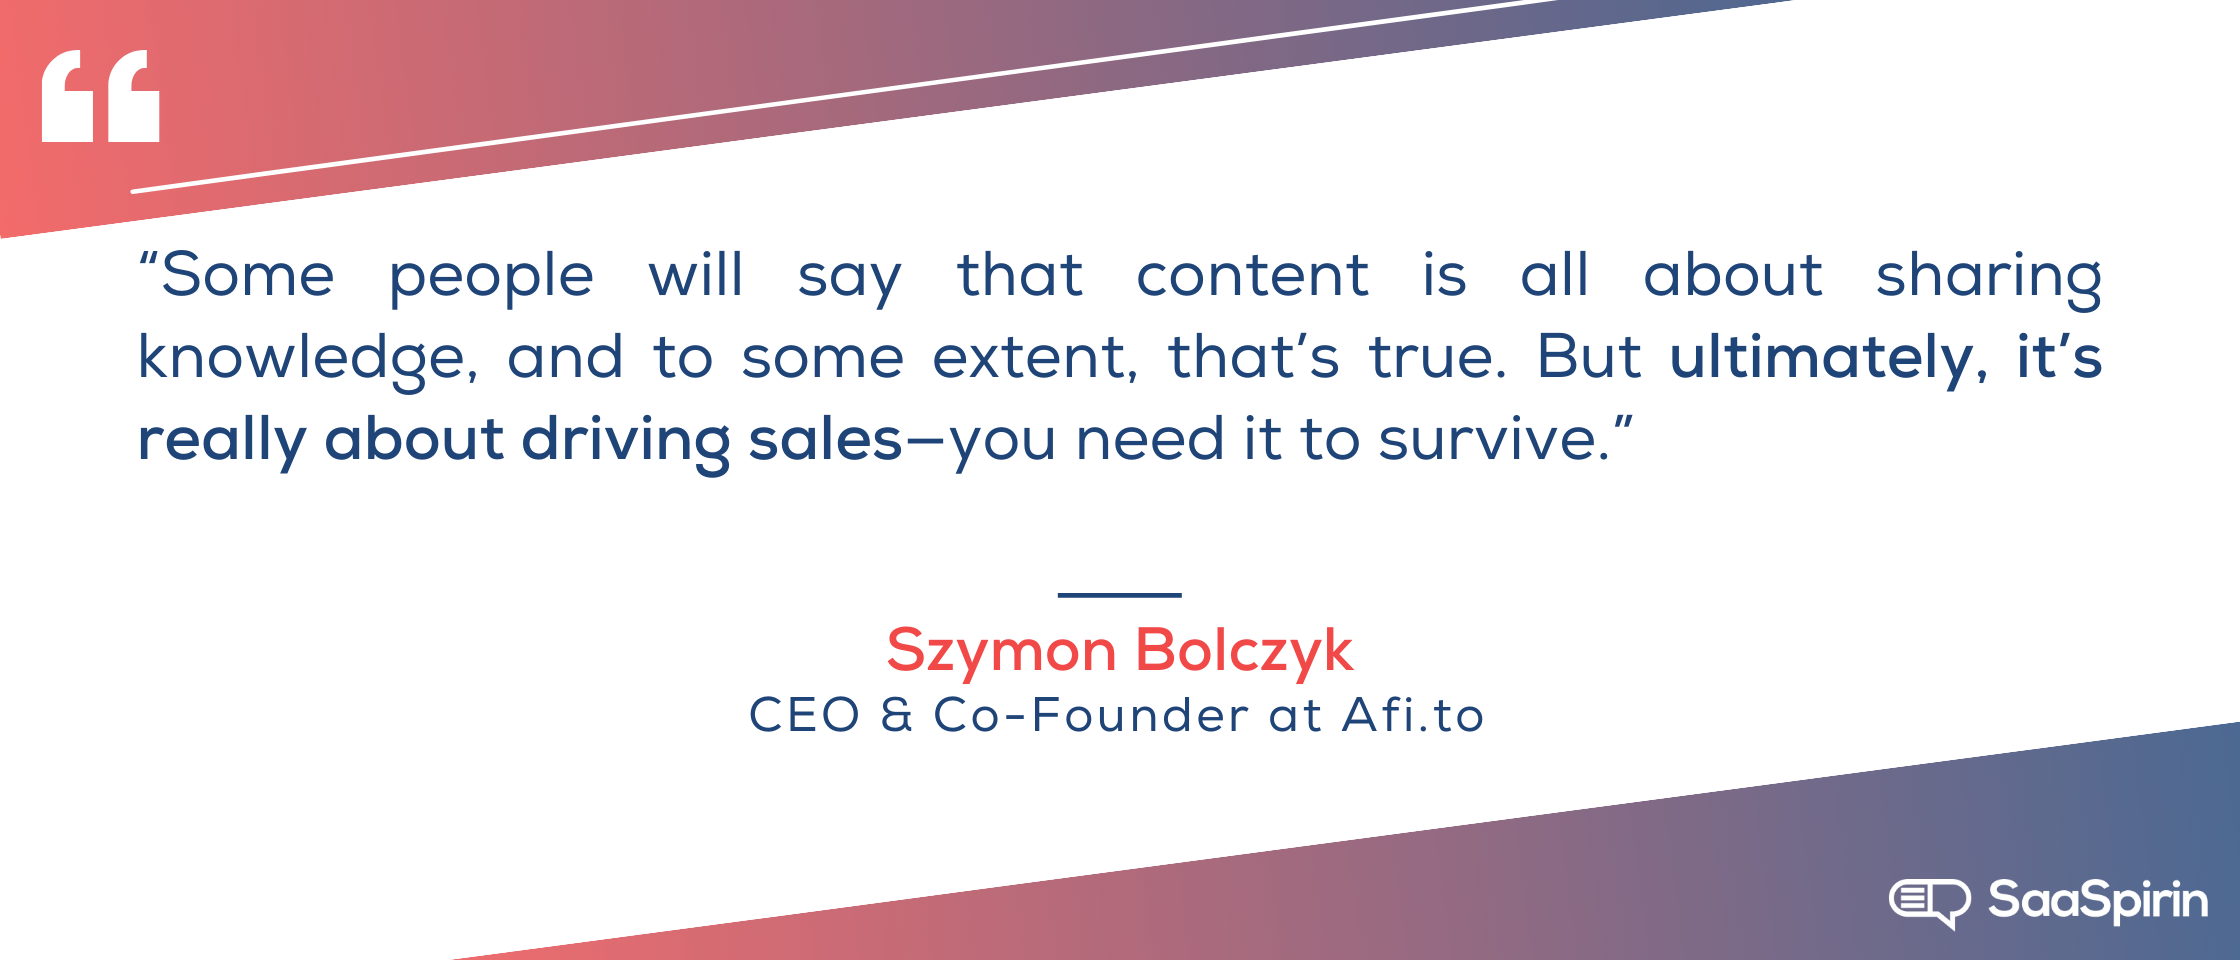 Some-people-will-say-that-content-is-all-about-sharing-knowledge-and-to-some-extent-thats-true-but-ultimately-its-really-about-driving-sales-you-need-it-to-survive.png